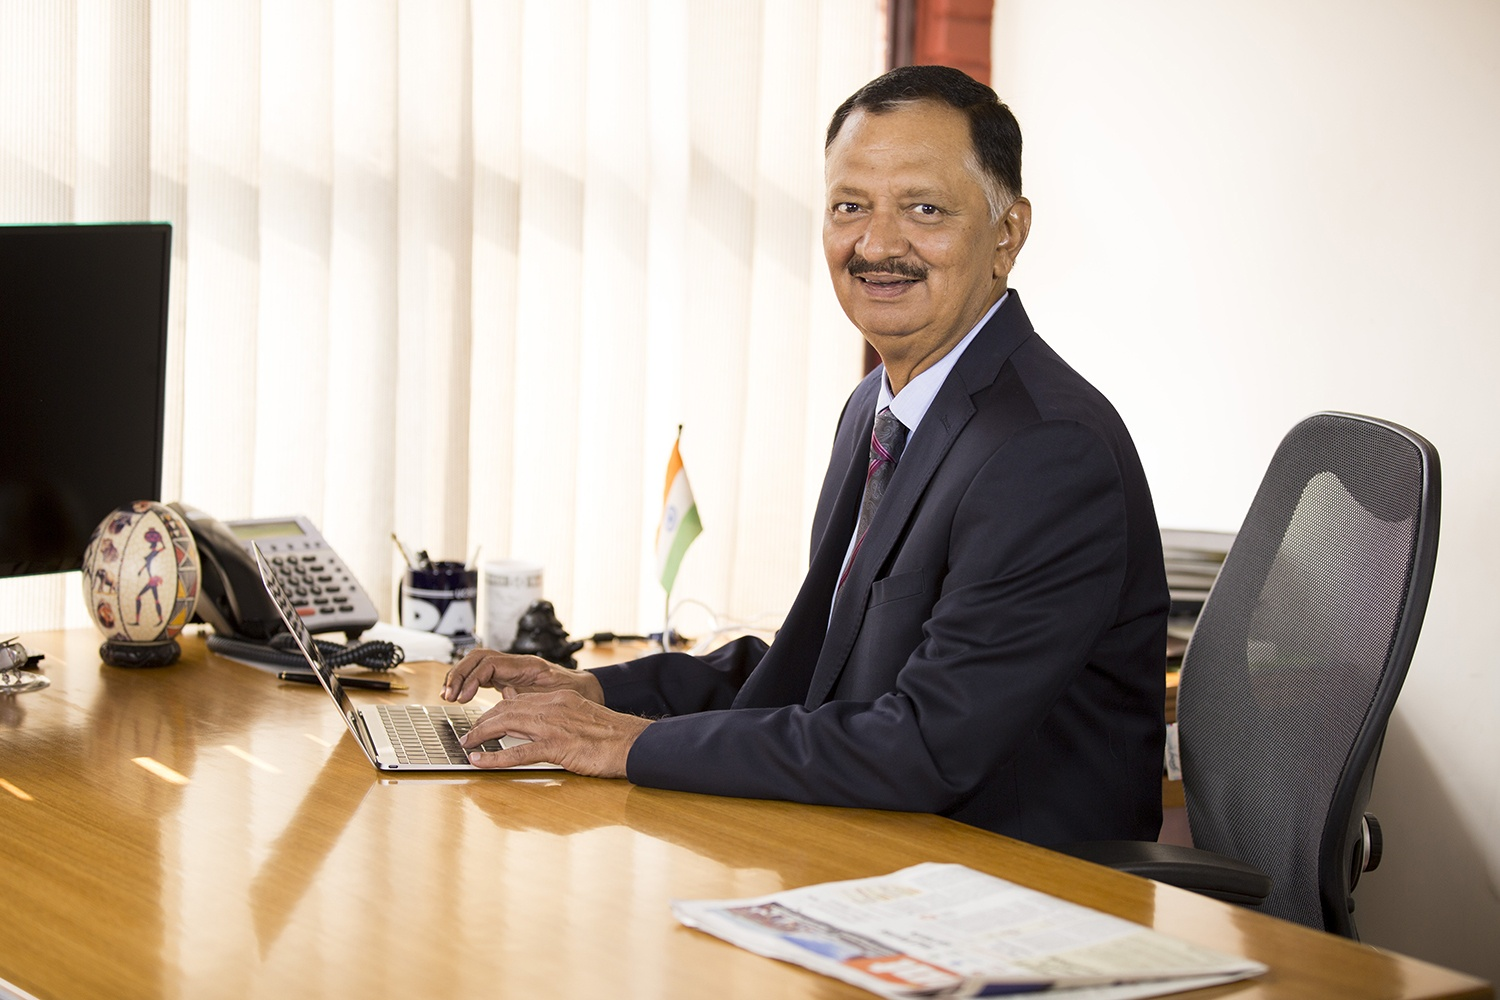 Diwakar-Nigam-Managing-Director-Newgen-Software